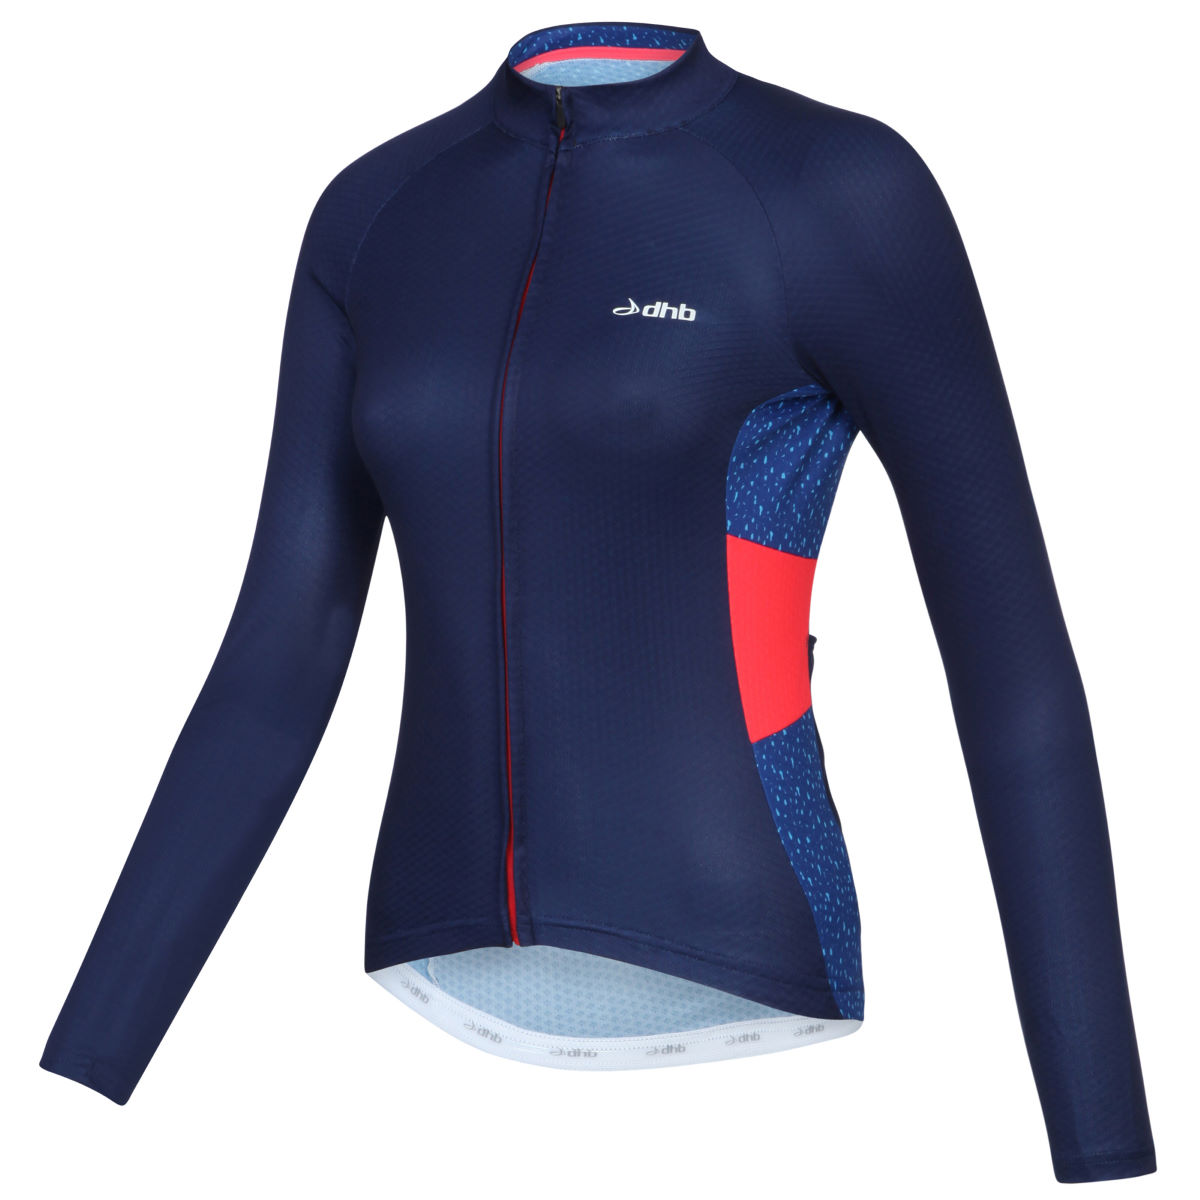 Maillot Femme dhb Aeron Sportive (manches longues) - 10 UK Navy/Red/Print Maillots vélo à manches longues